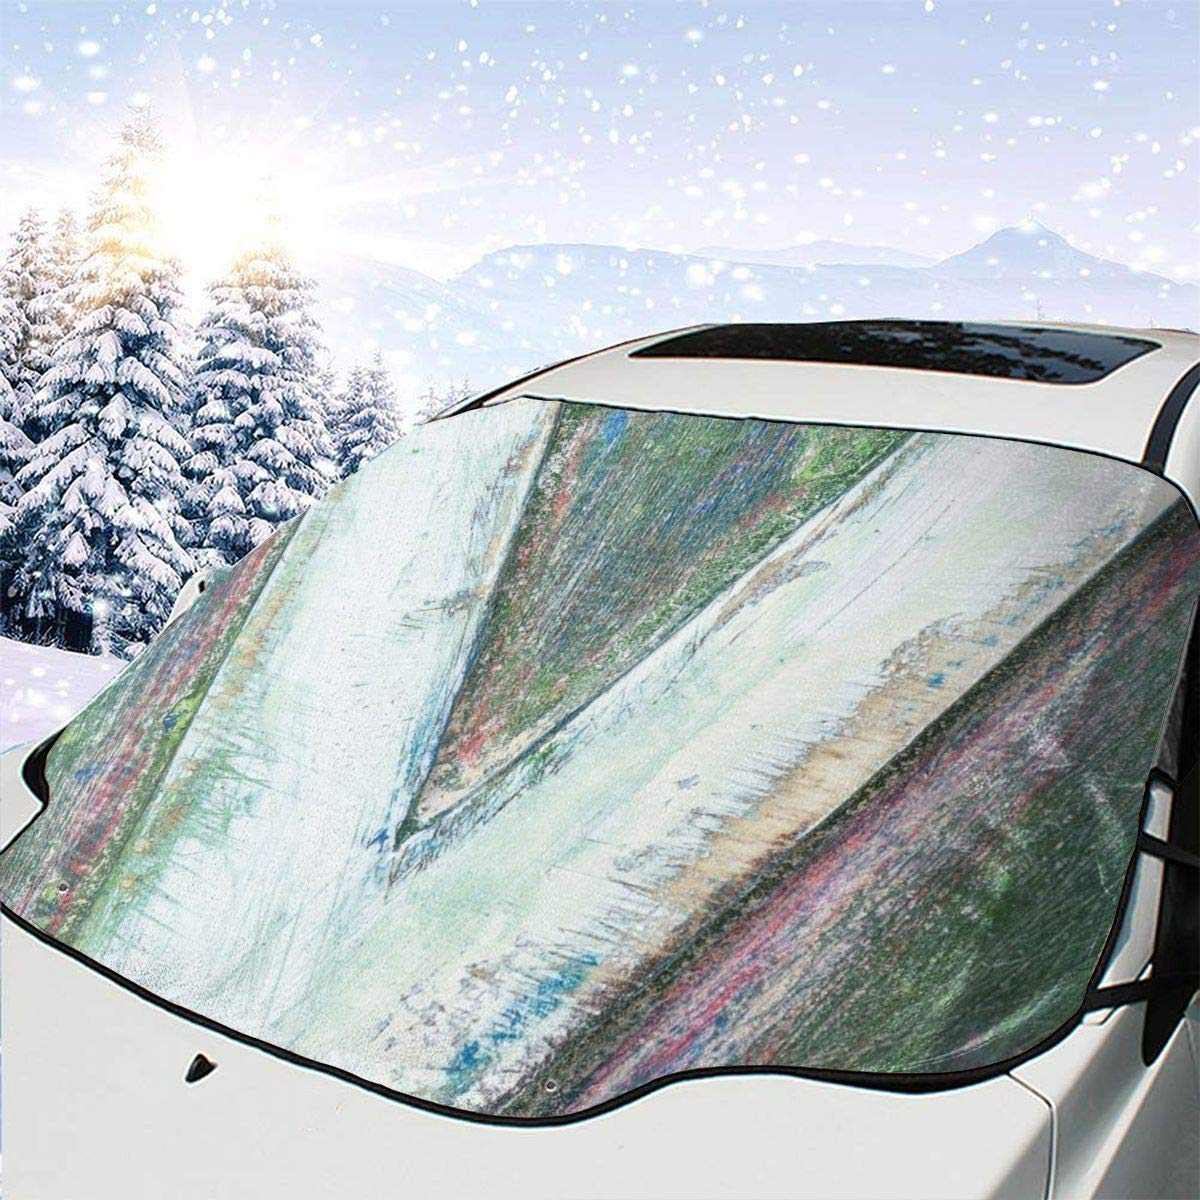 Car Front Window 2021 famous autumn and winter new Windshield Snow Wooden Ca Alphabet Block Cover